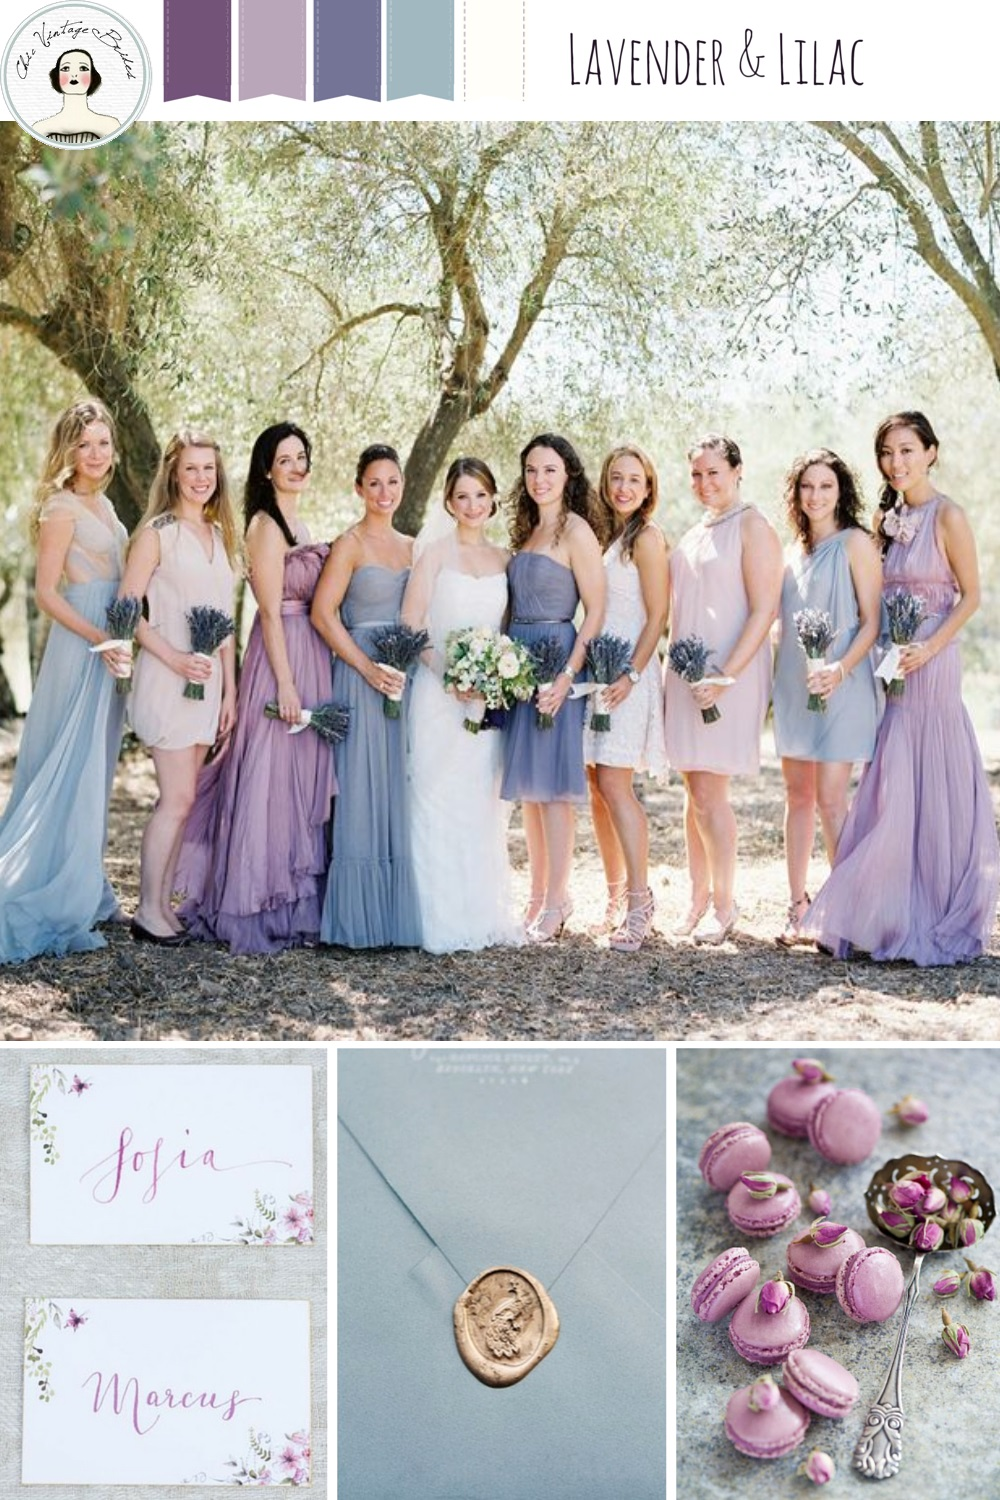 A Romantic Lilac & Lavender Wedding Inspiration Board : Chic Vintage ...